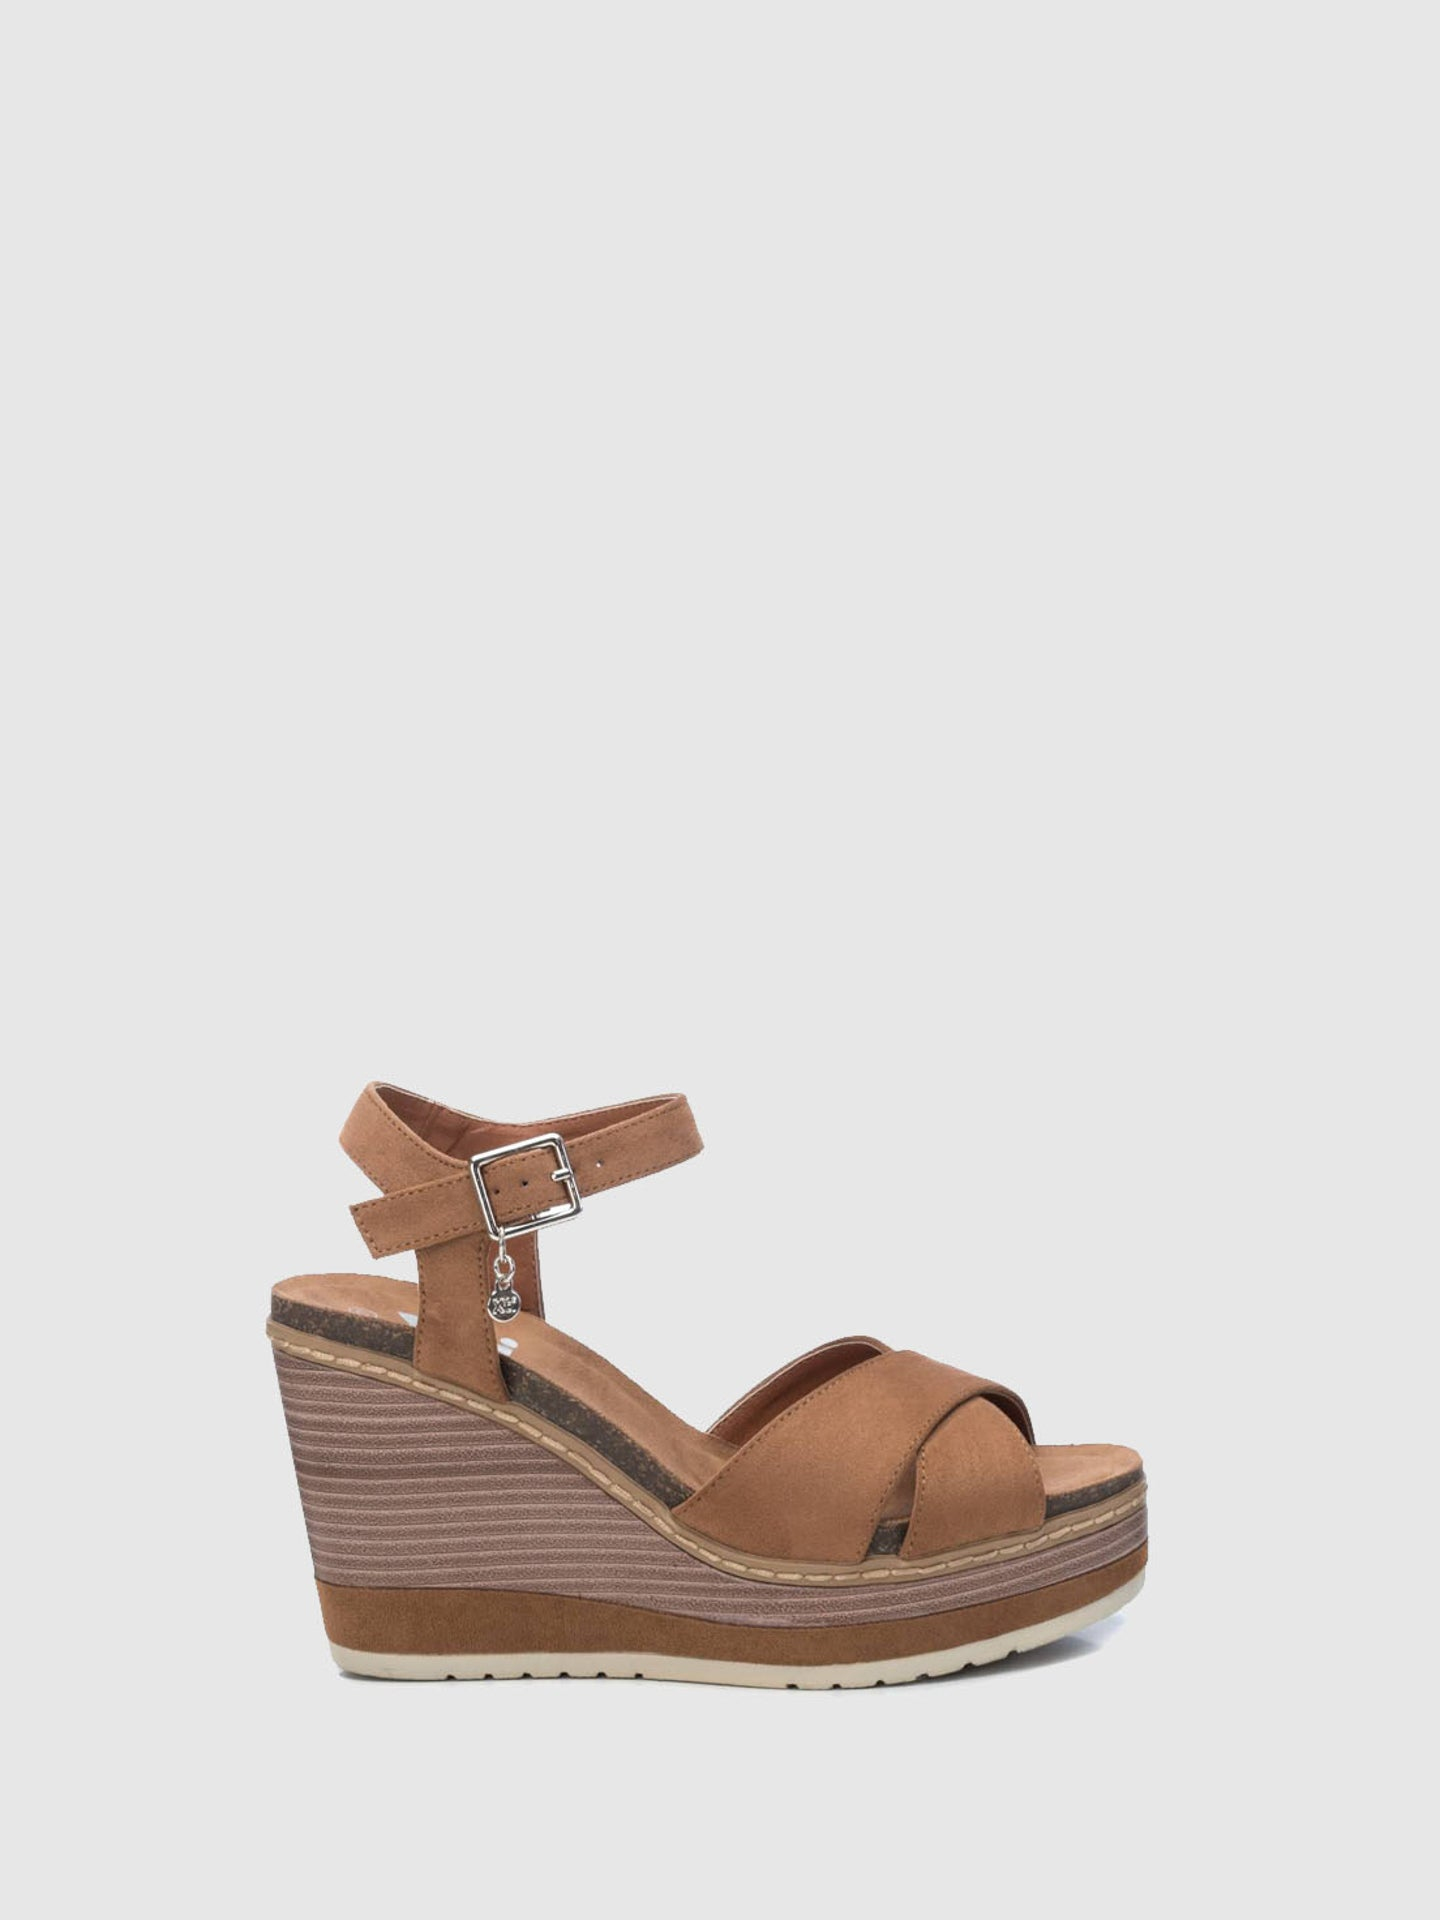 XTI Brown Wedge Sandals